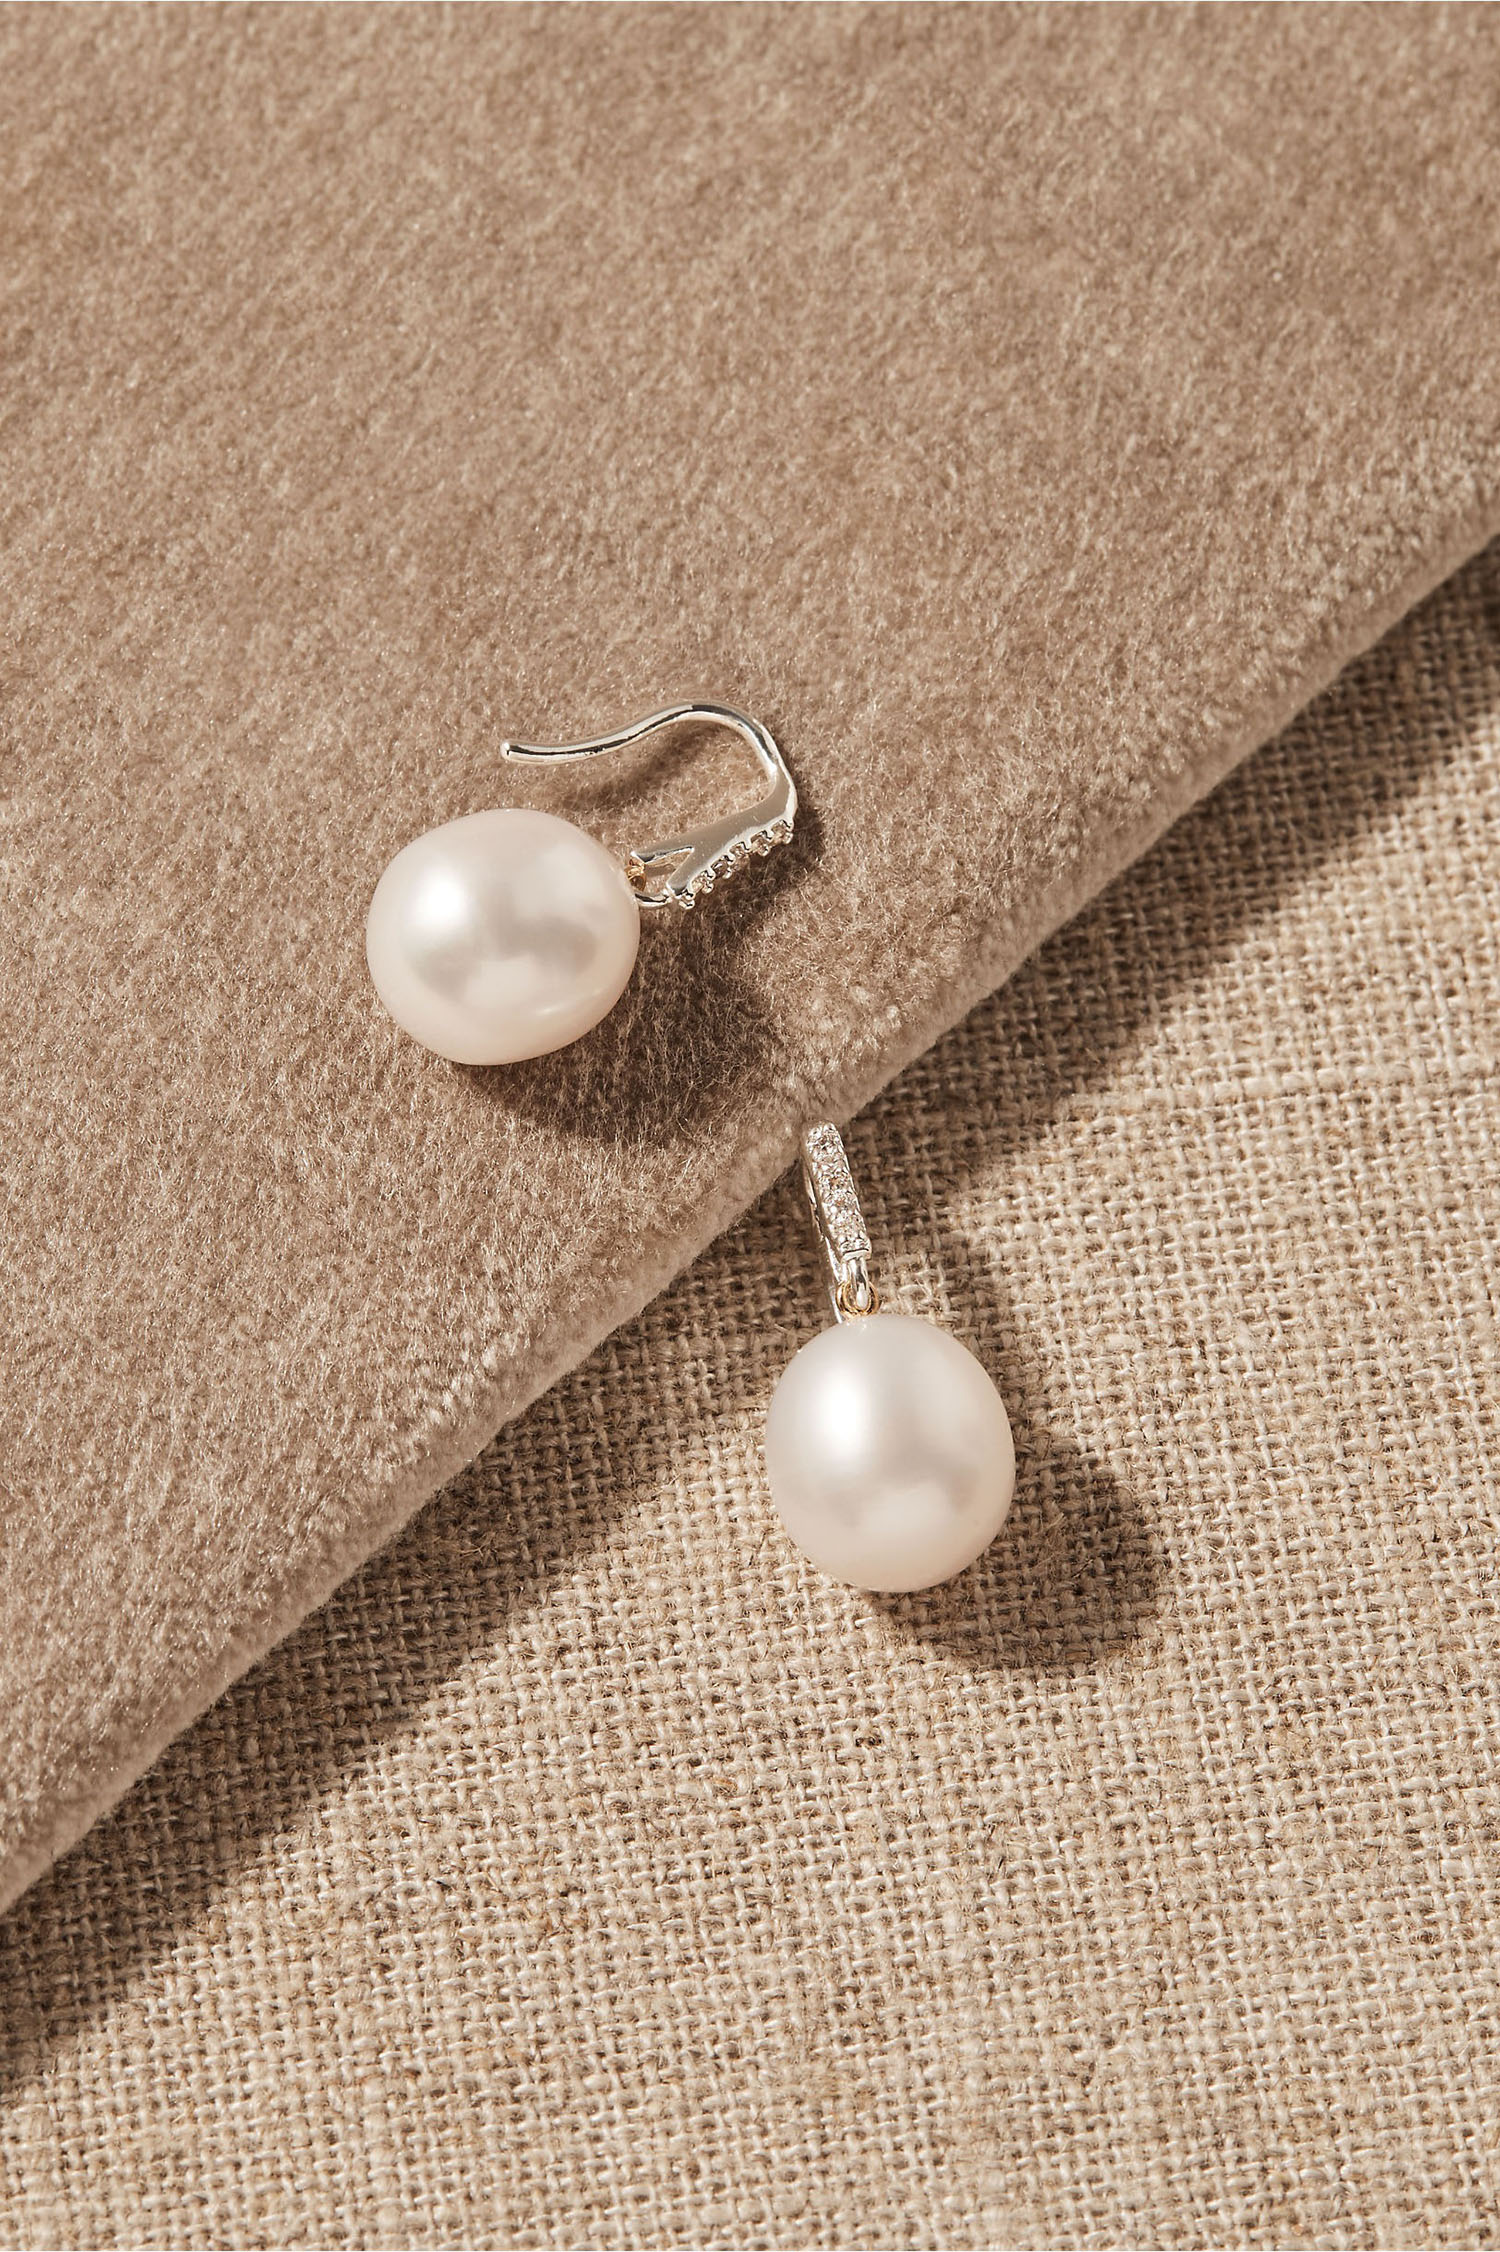 solitary pearl wedding earrings with silver posts